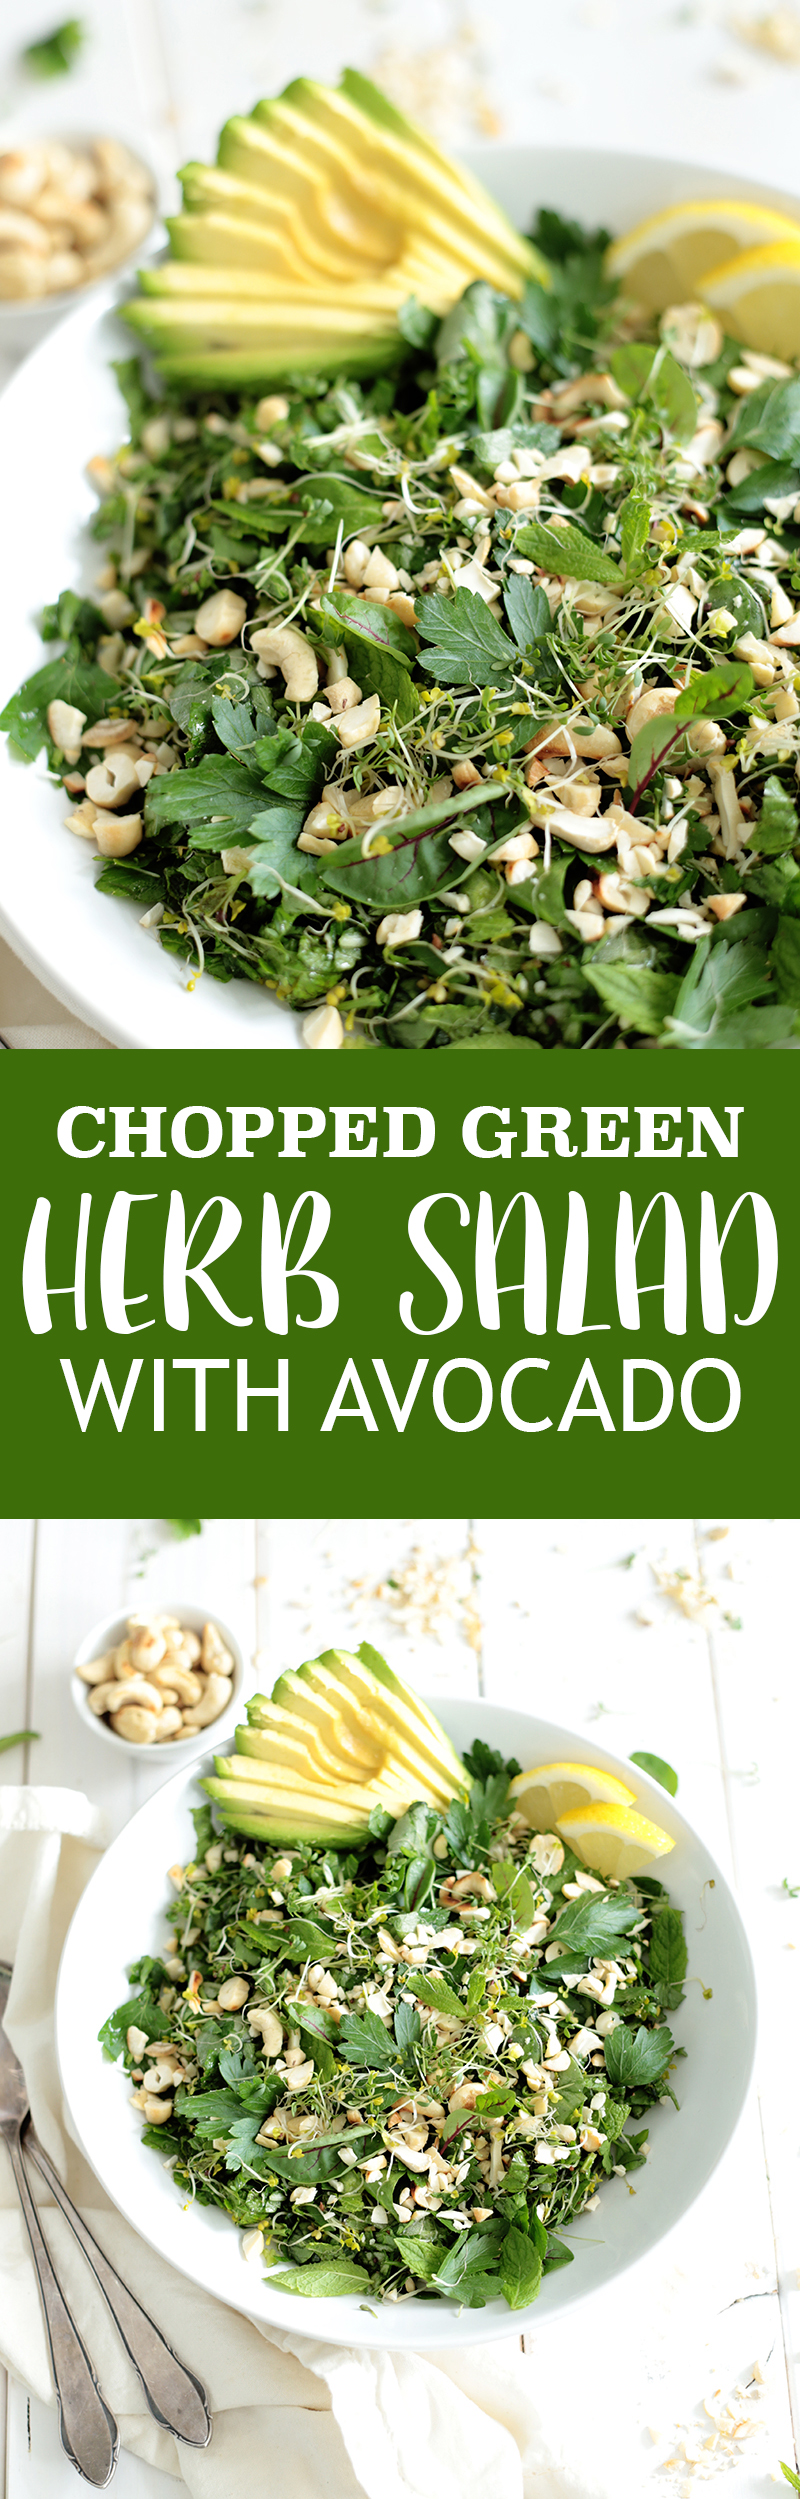 Green Herb Salad with Avocado